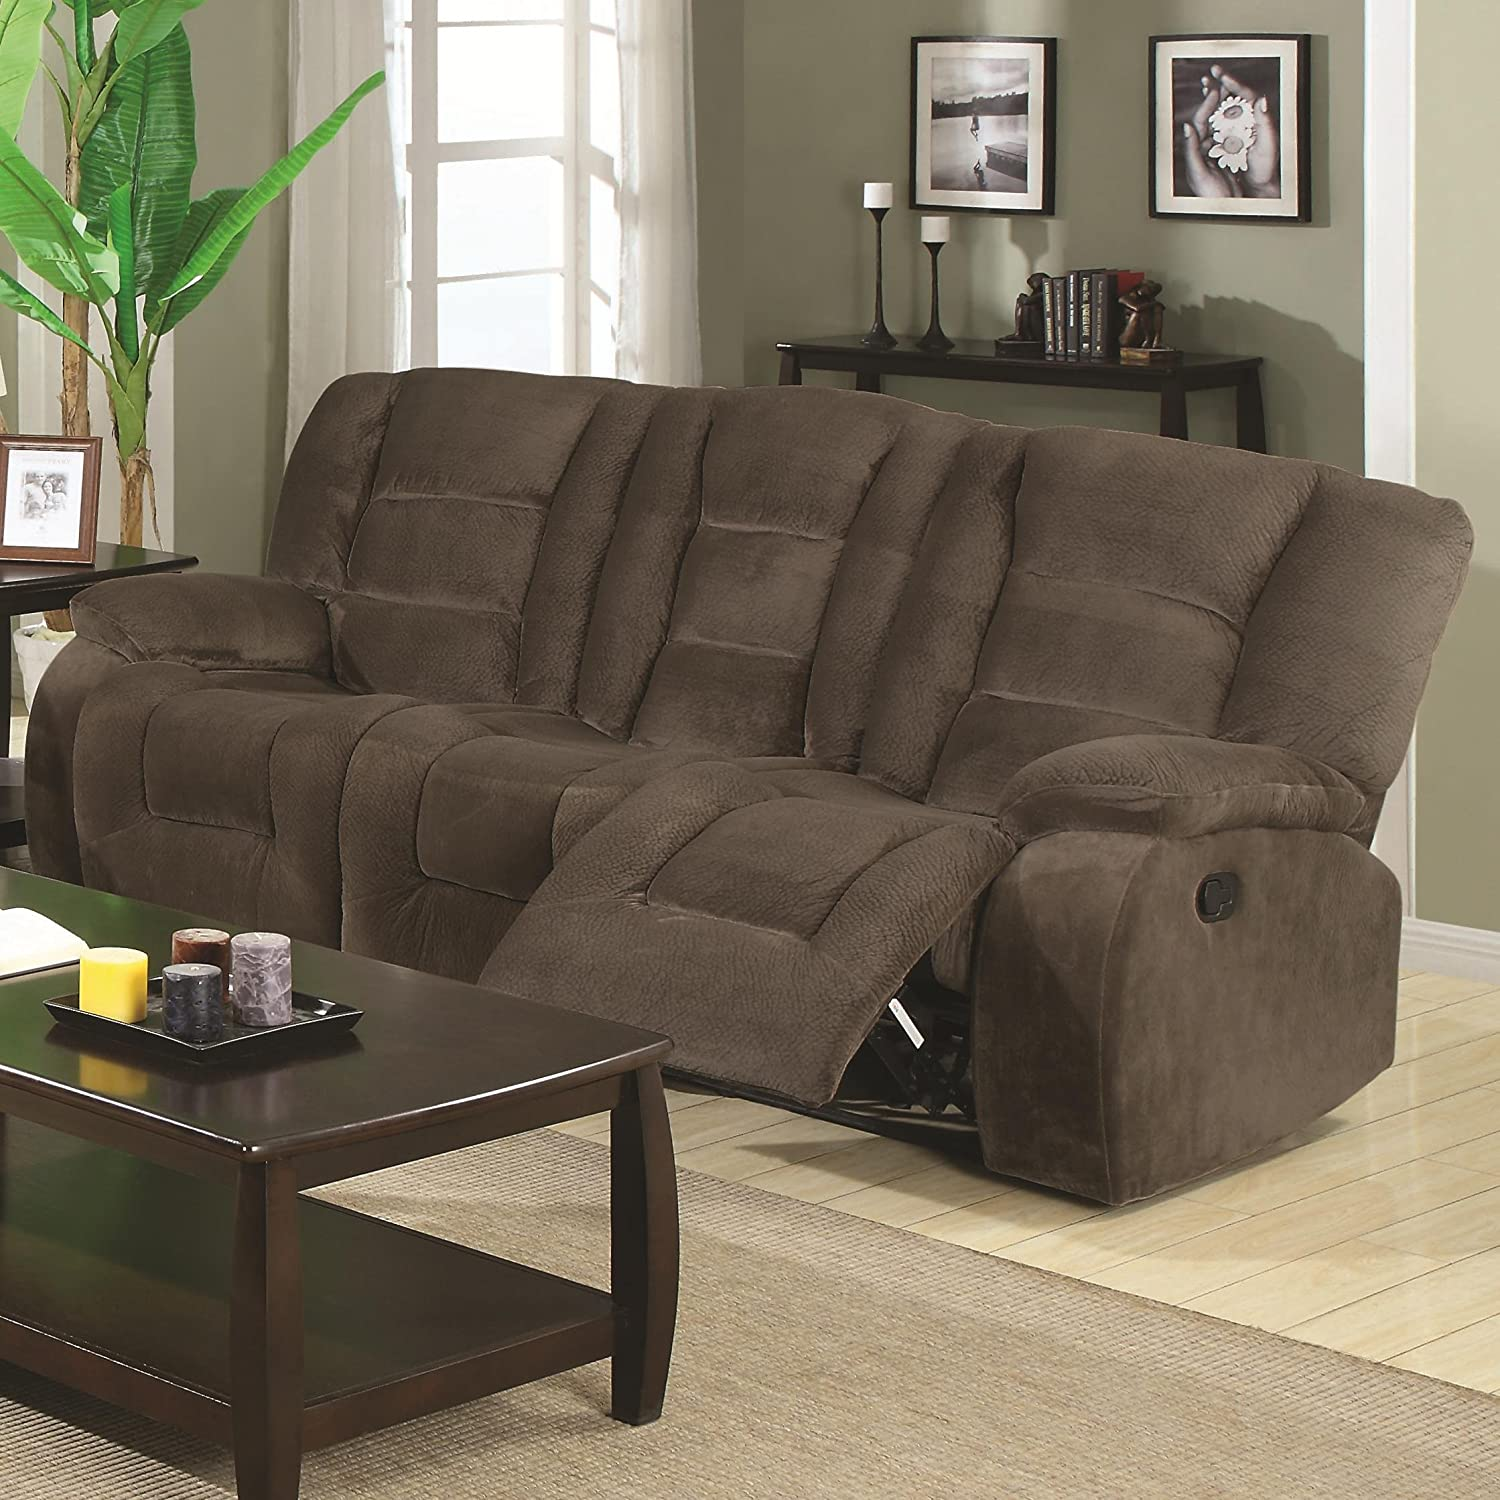 Amazon.com Coaster Home Furnishings Casual Motion Sofa Brown Siege Kitchen u0026 Dining & Amazon.com: Coaster Home Furnishings Casual Motion Sofa Brown ... islam-shia.org